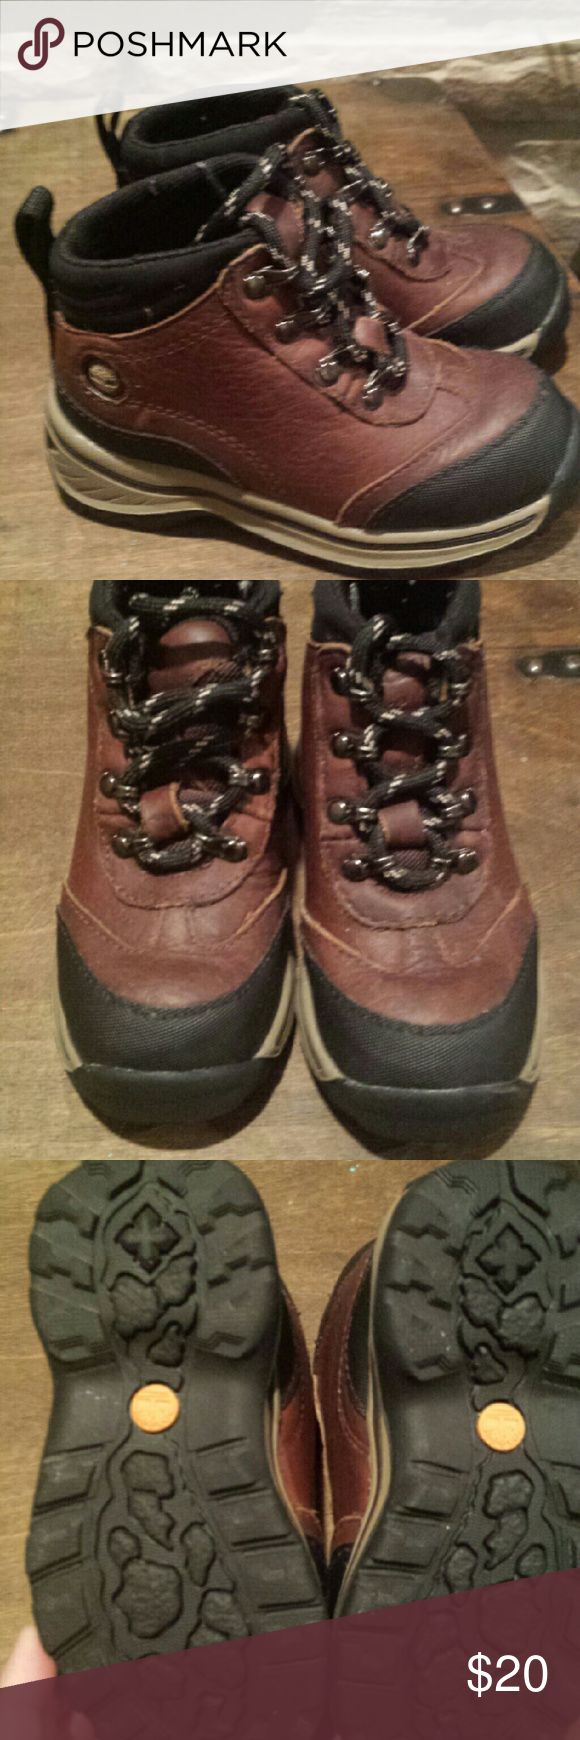 Toddler Timberland Boots EUC, smoke and pet free home. Very little wear. Timberland Shoes Boots